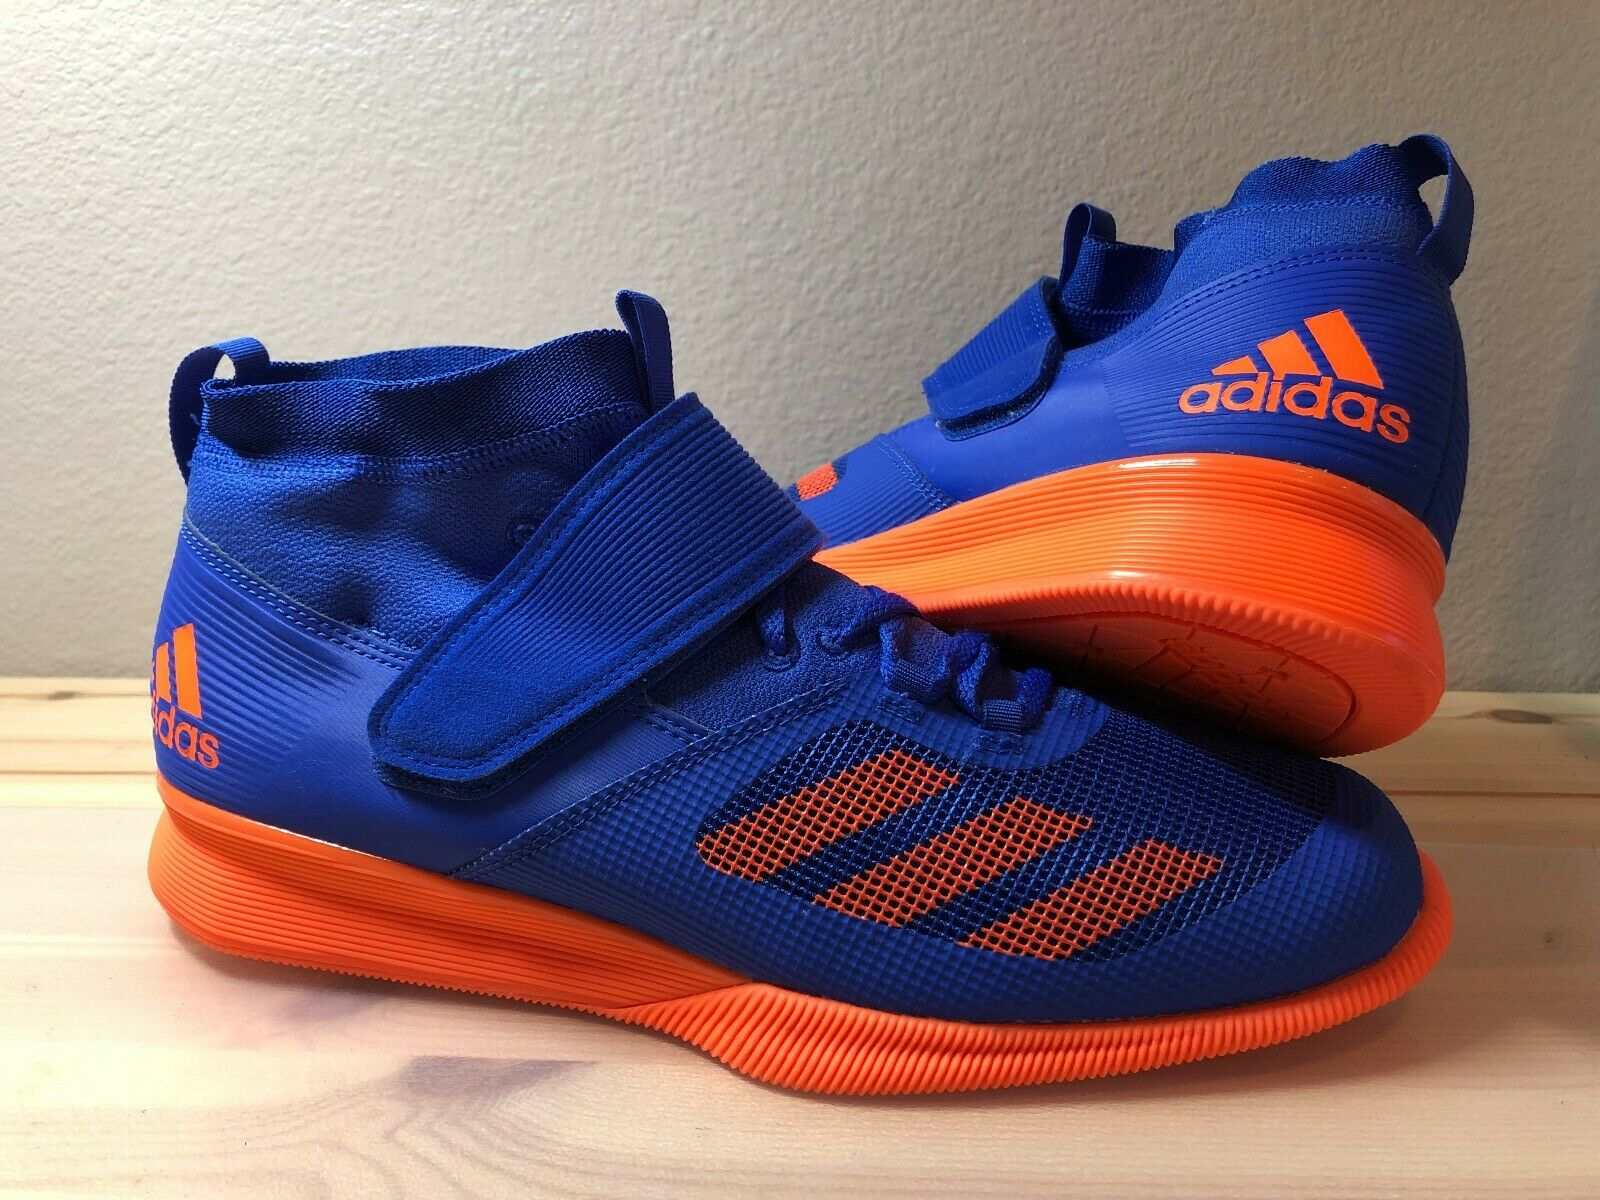 Men's Adidas Crazy Power RK Weightlifting Powerlifting shoes Size 11 (BB6360)